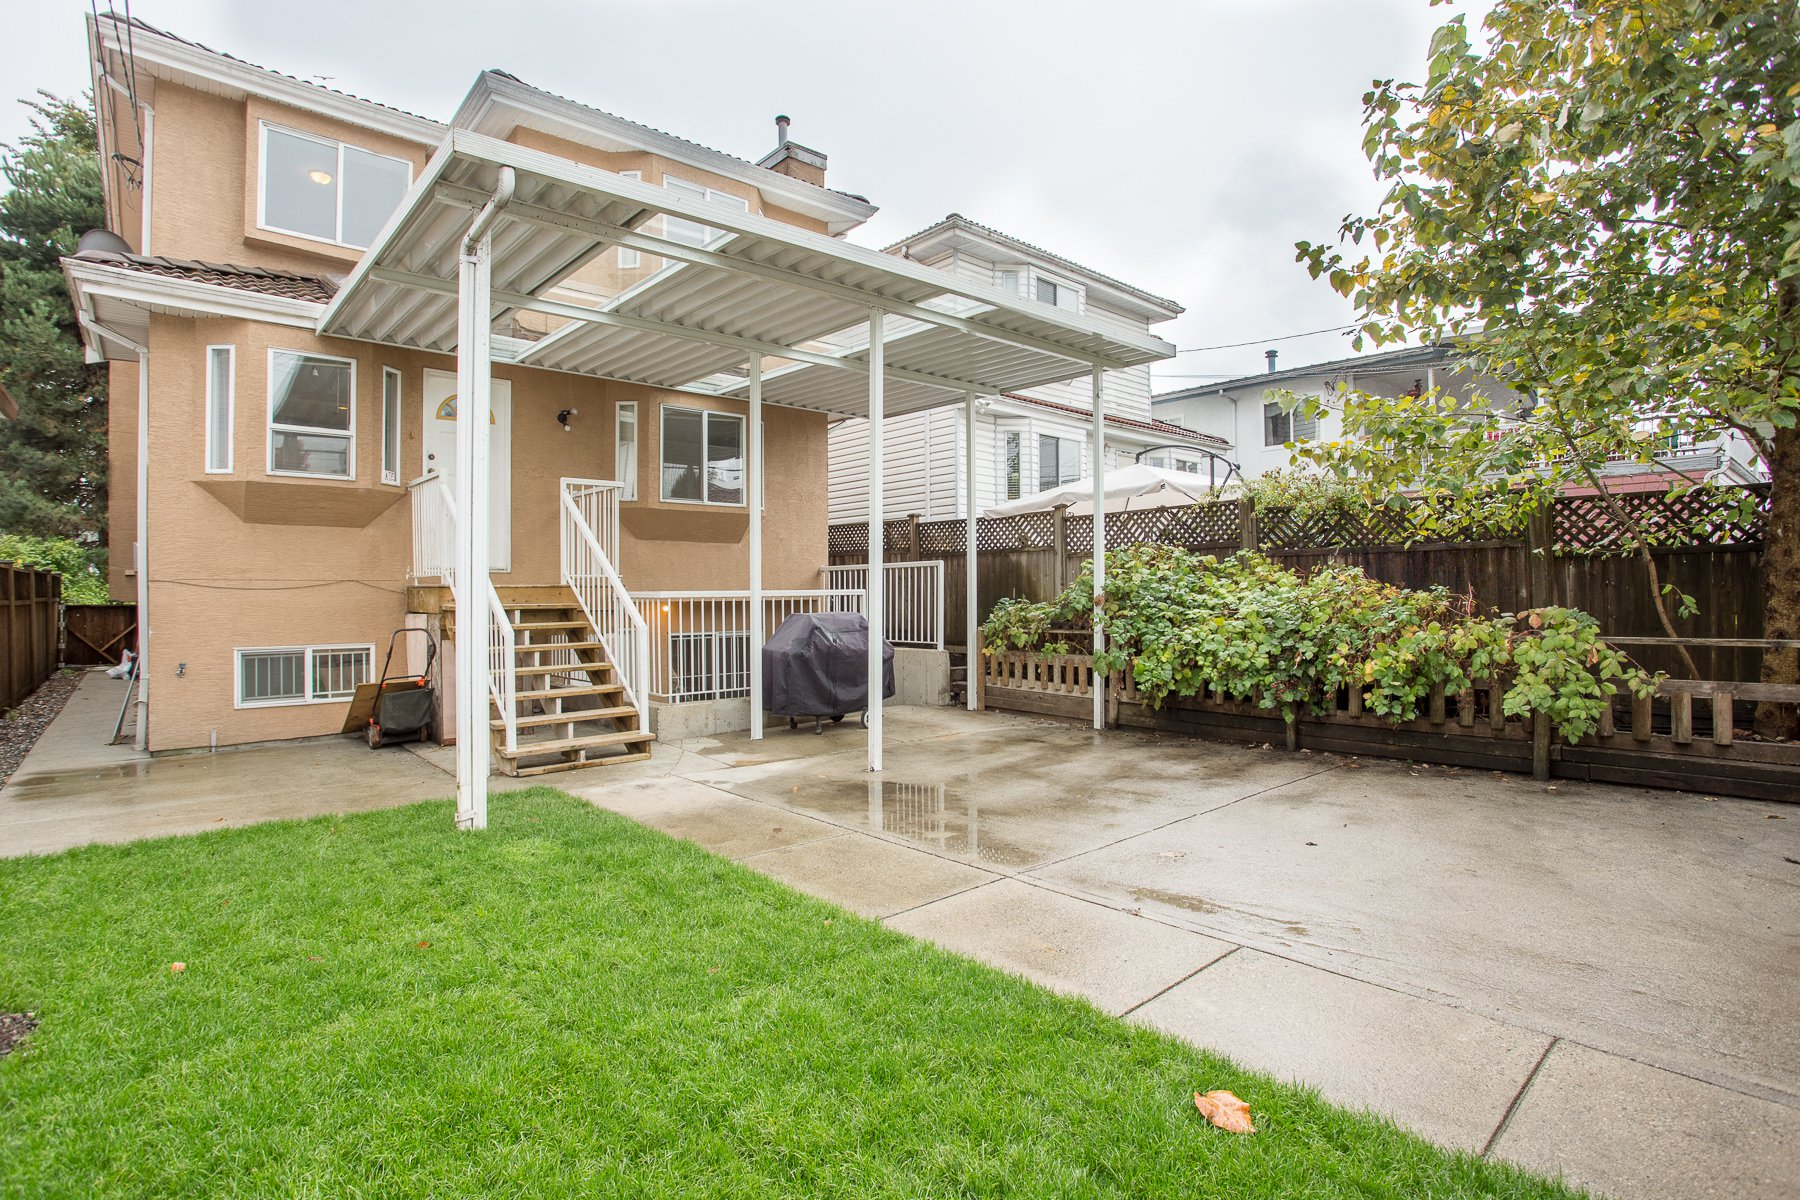 Photo 29: Photos: 3387 E. 2nd Ave in Vancouver: House for sale (Vancouver East)